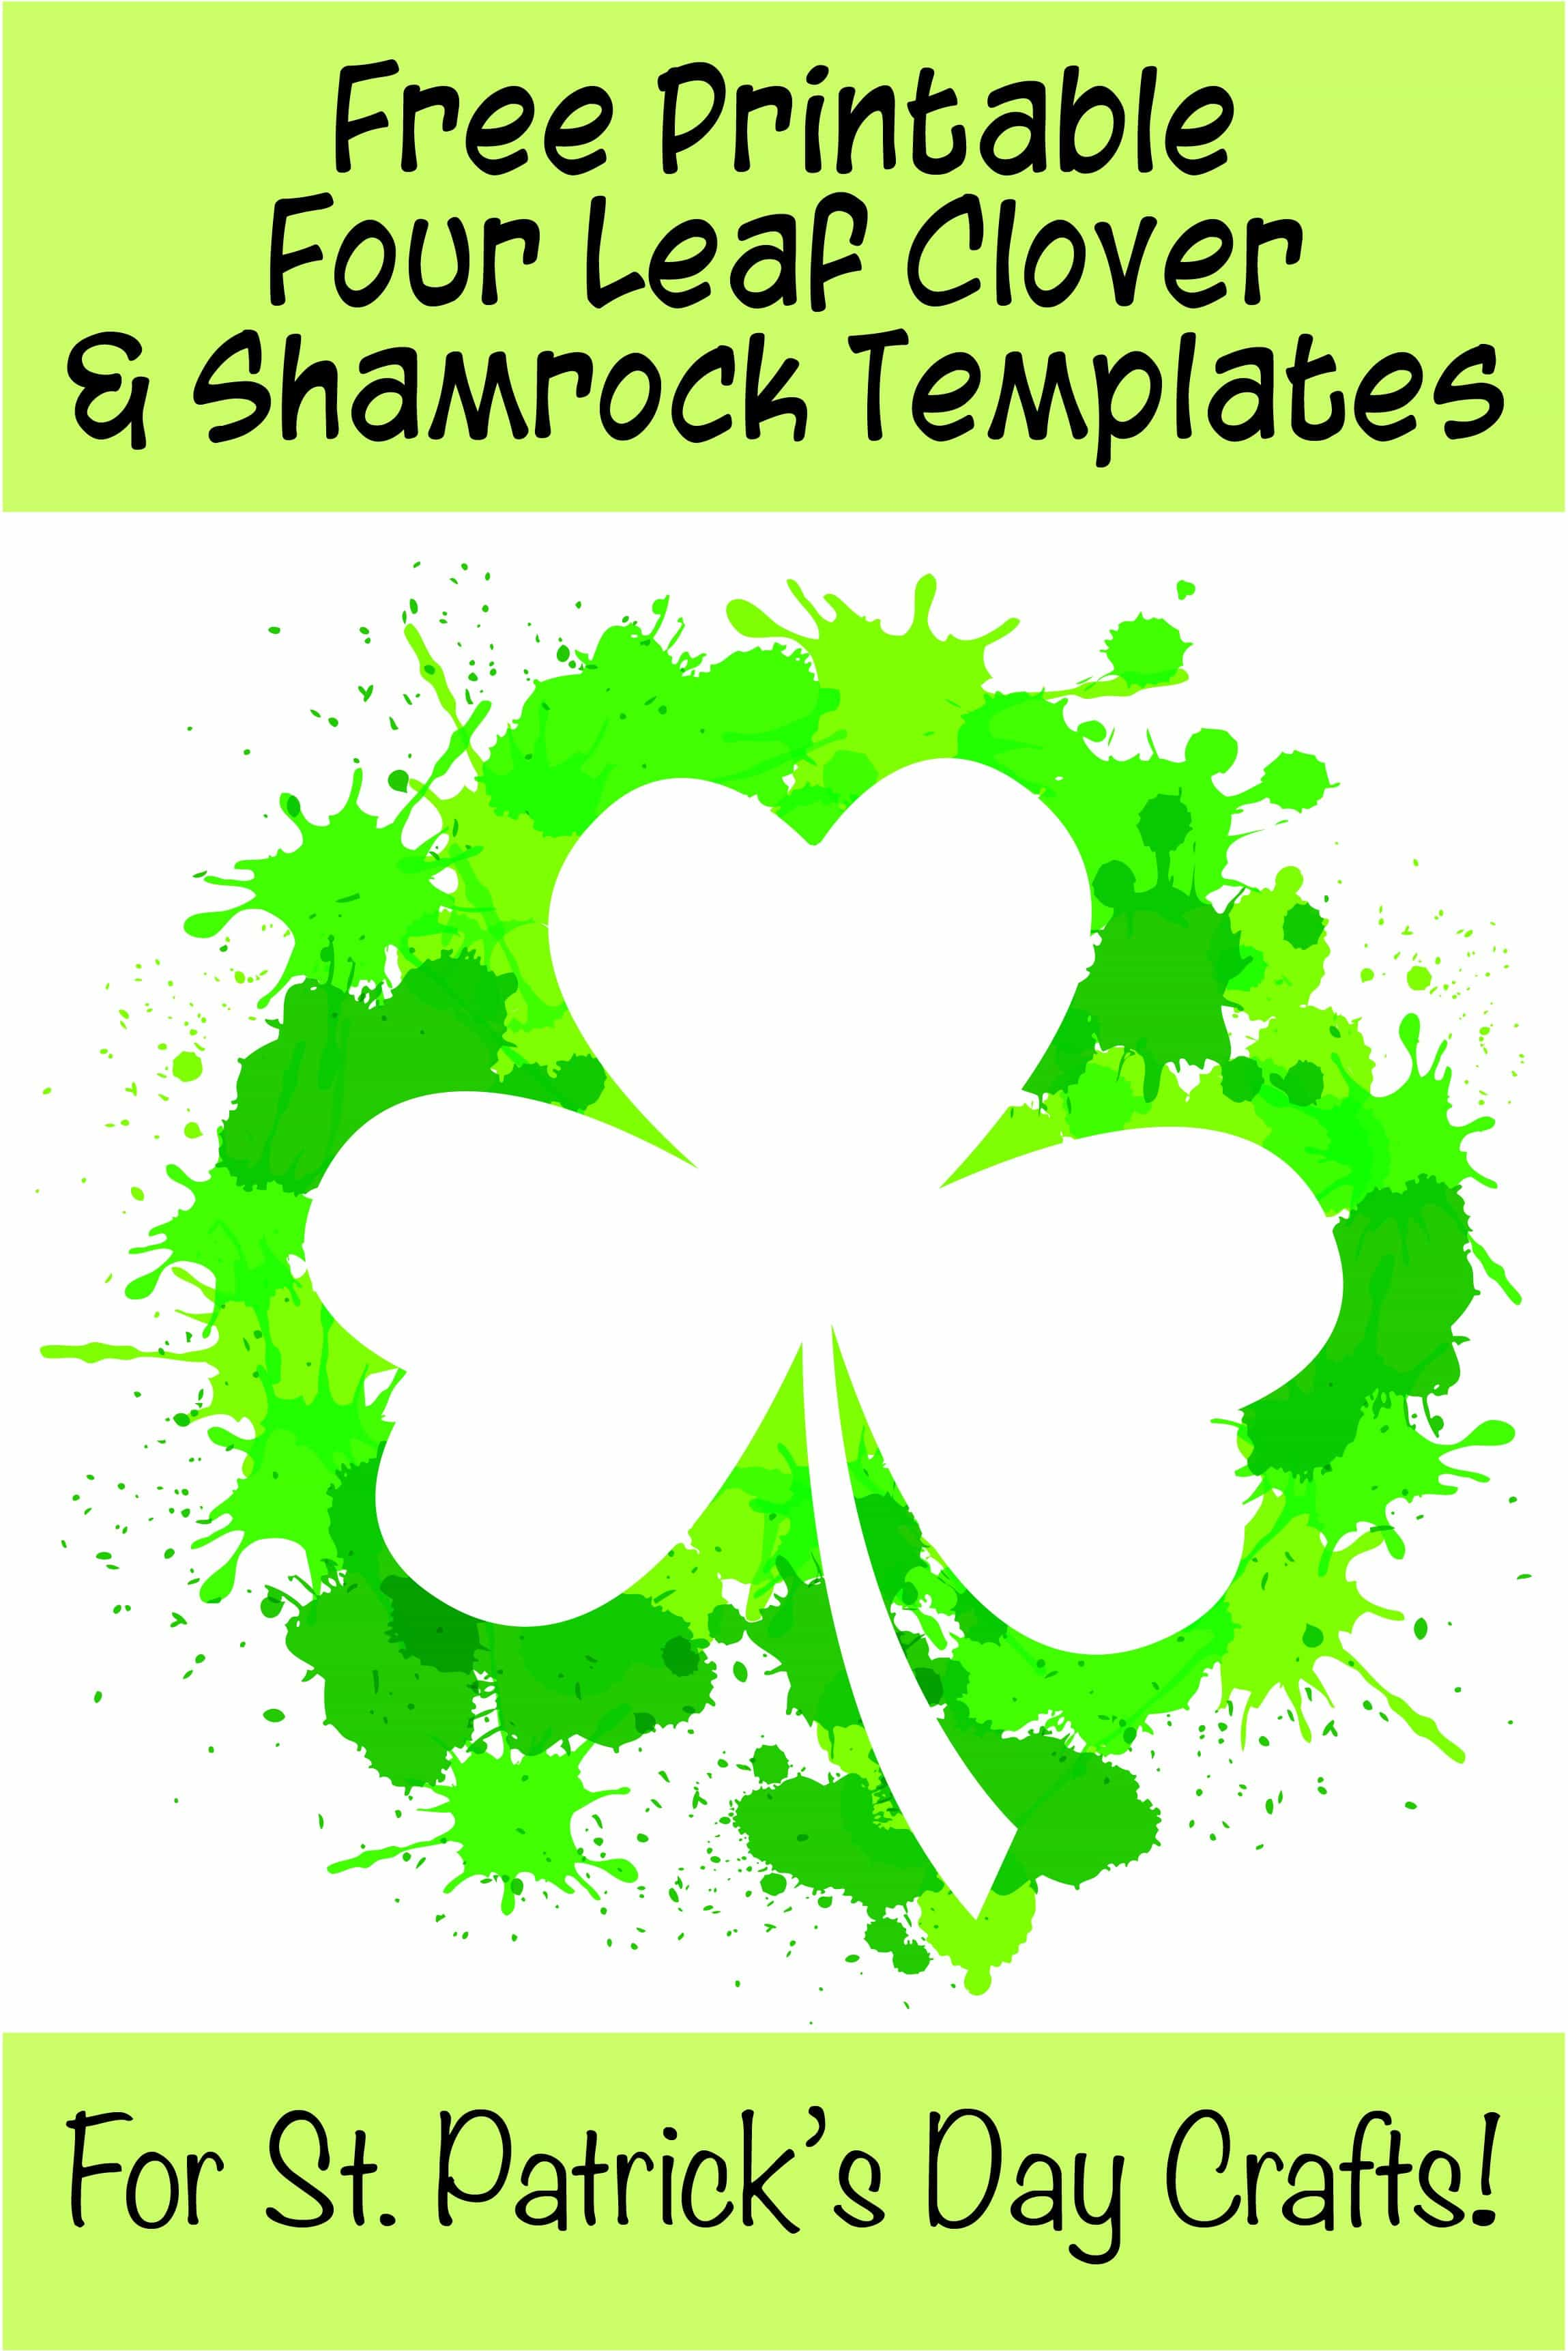 image regarding 4 Leaf Clover Printable named 17+ Free of charge Printable 4 Leaf Clover Shamrock Templates